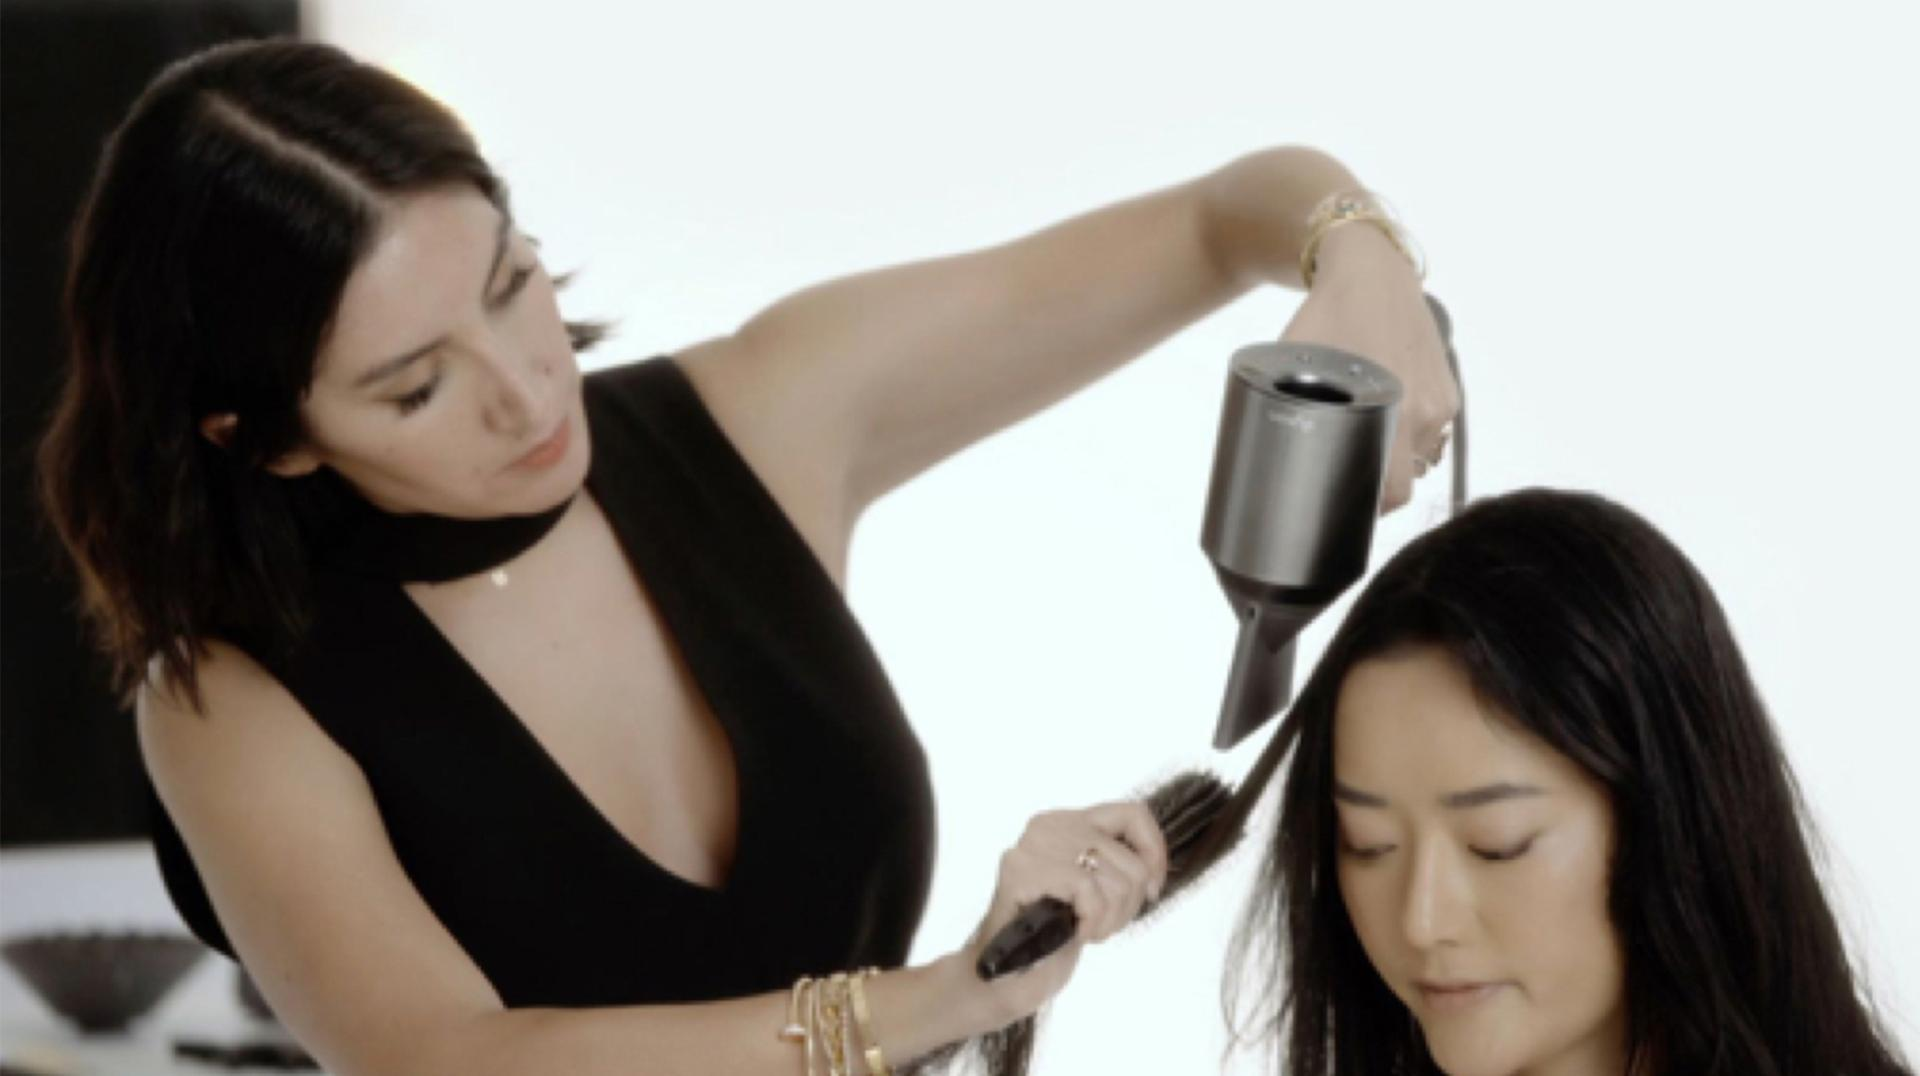 Professional hair stylist using the Dyson Supersonic hair dryer on a customer